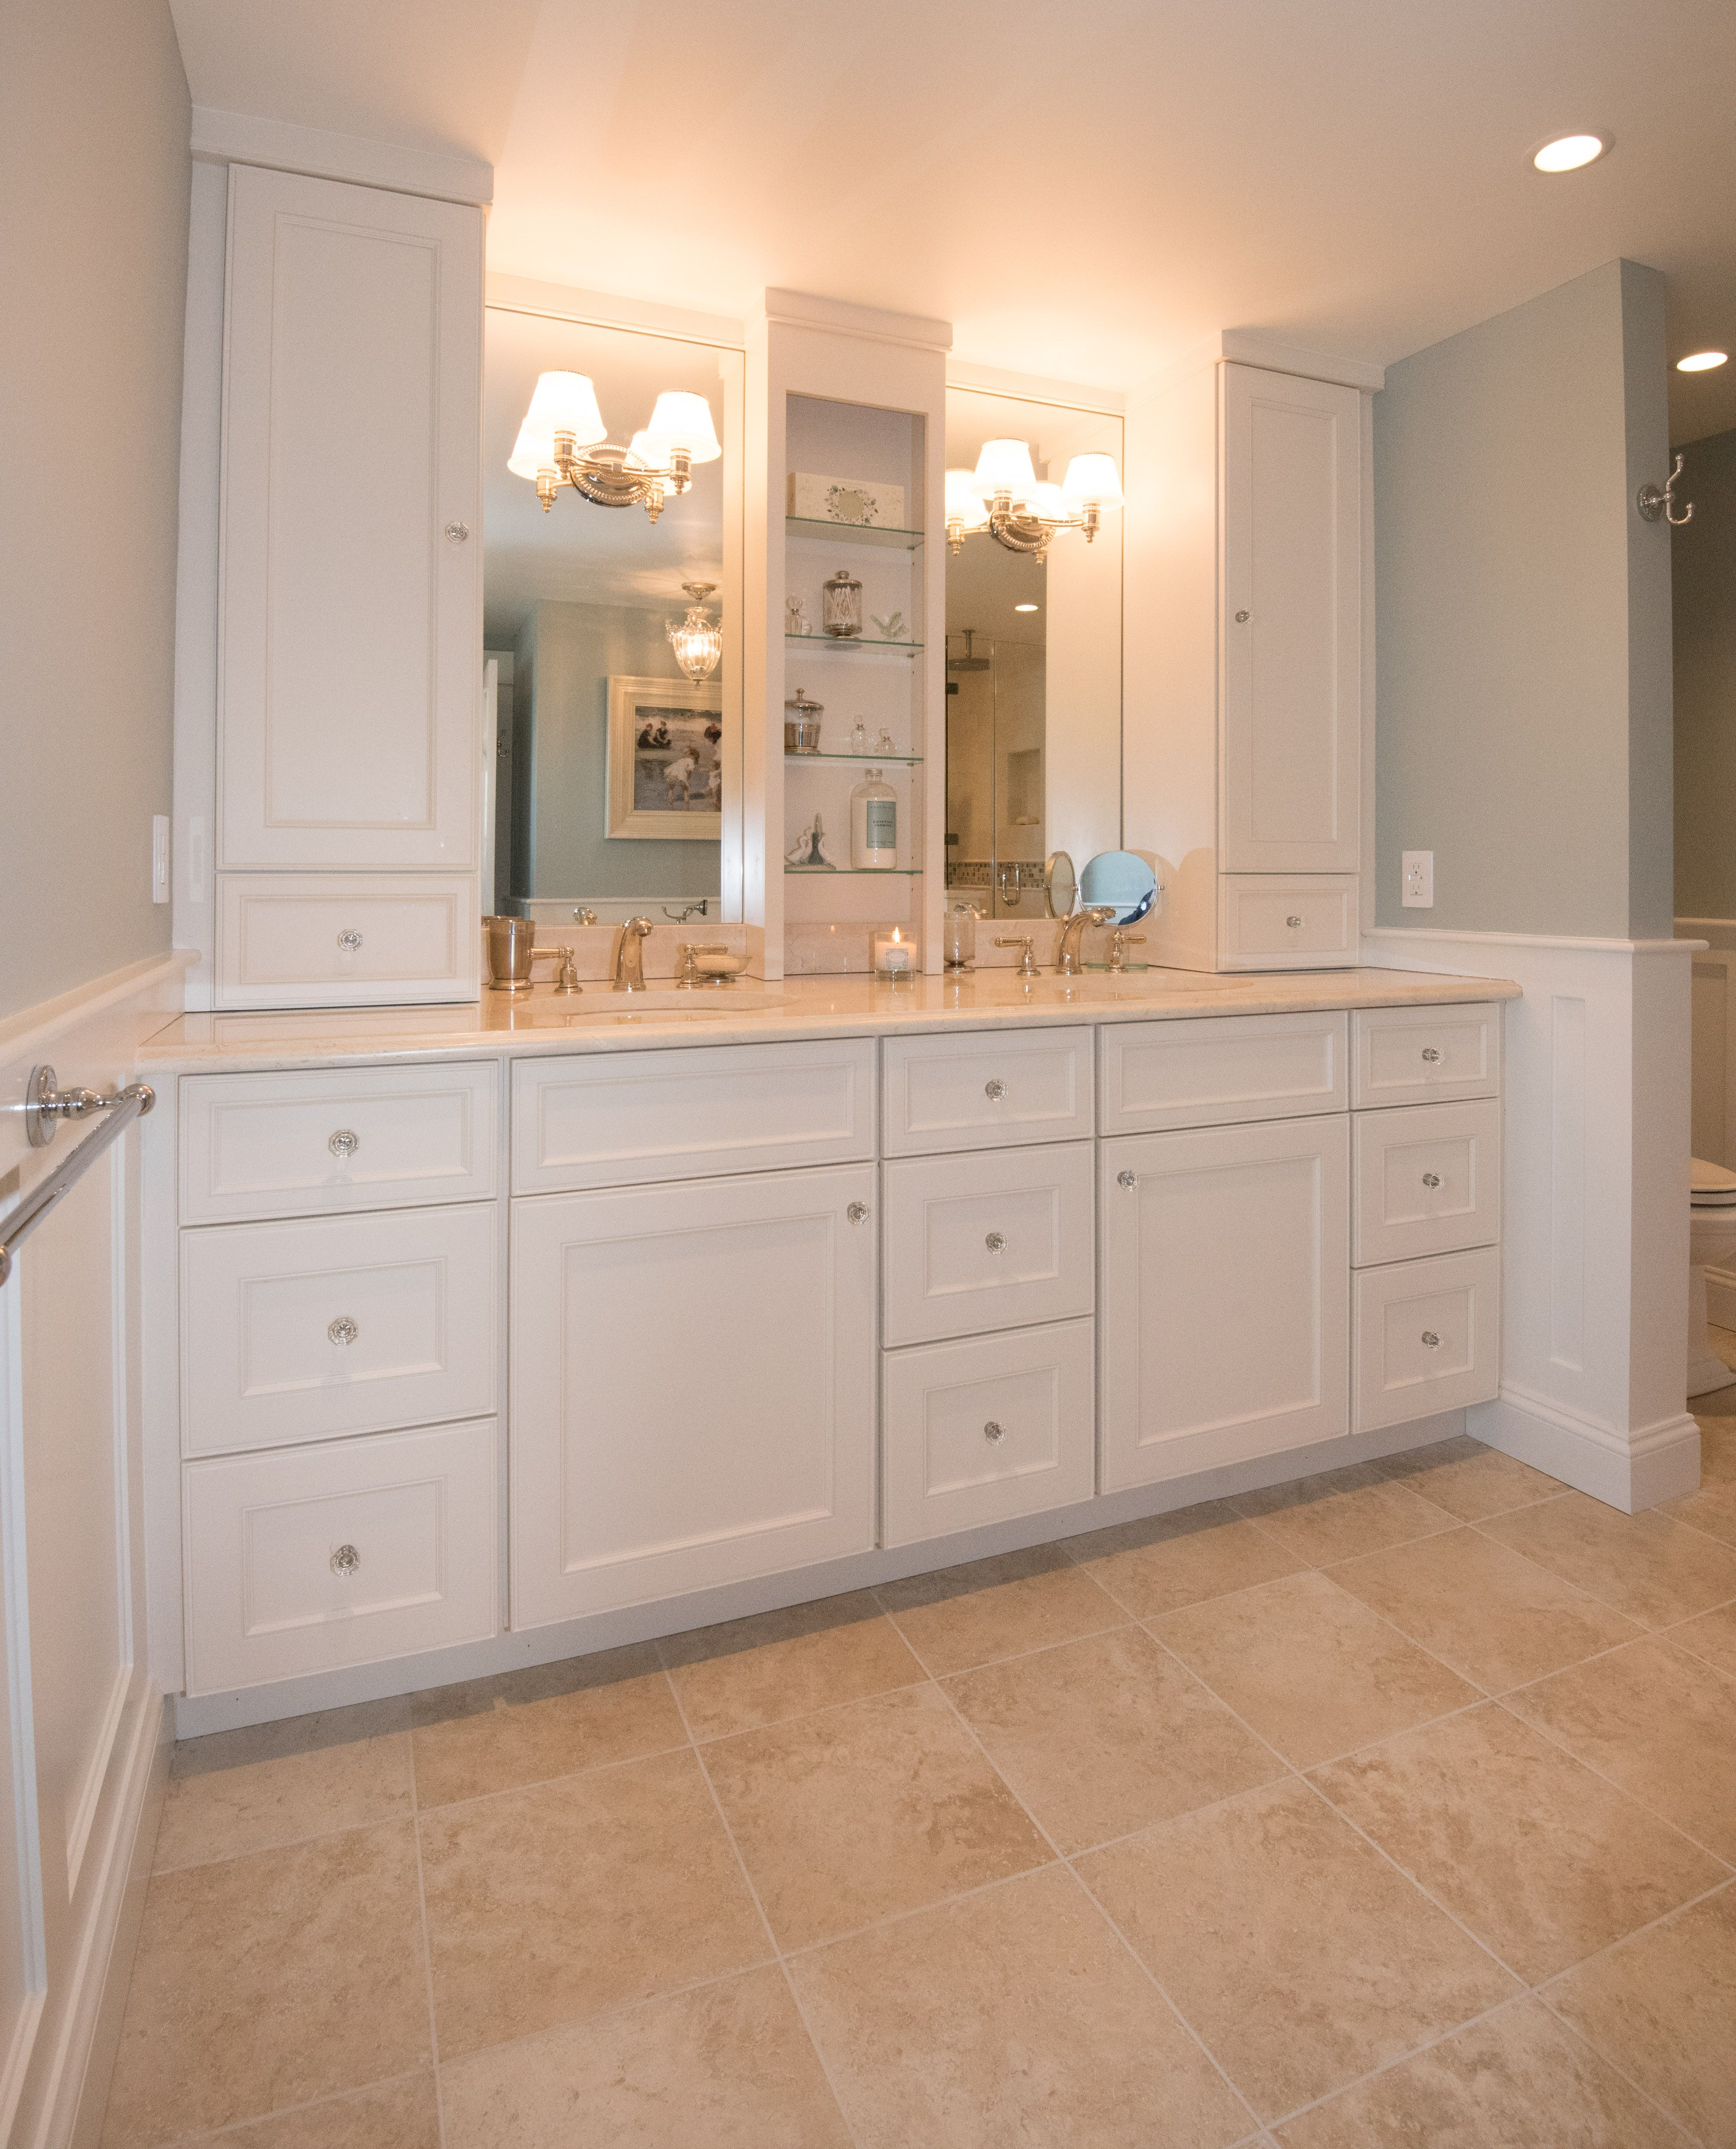 This Double Vanity Has Truly Maximized Storage With Tall Linen Cabinets Flanking The Mirrors And Matching Cab Unusual Bathrooms Bathroom Design Bathroom Vanity